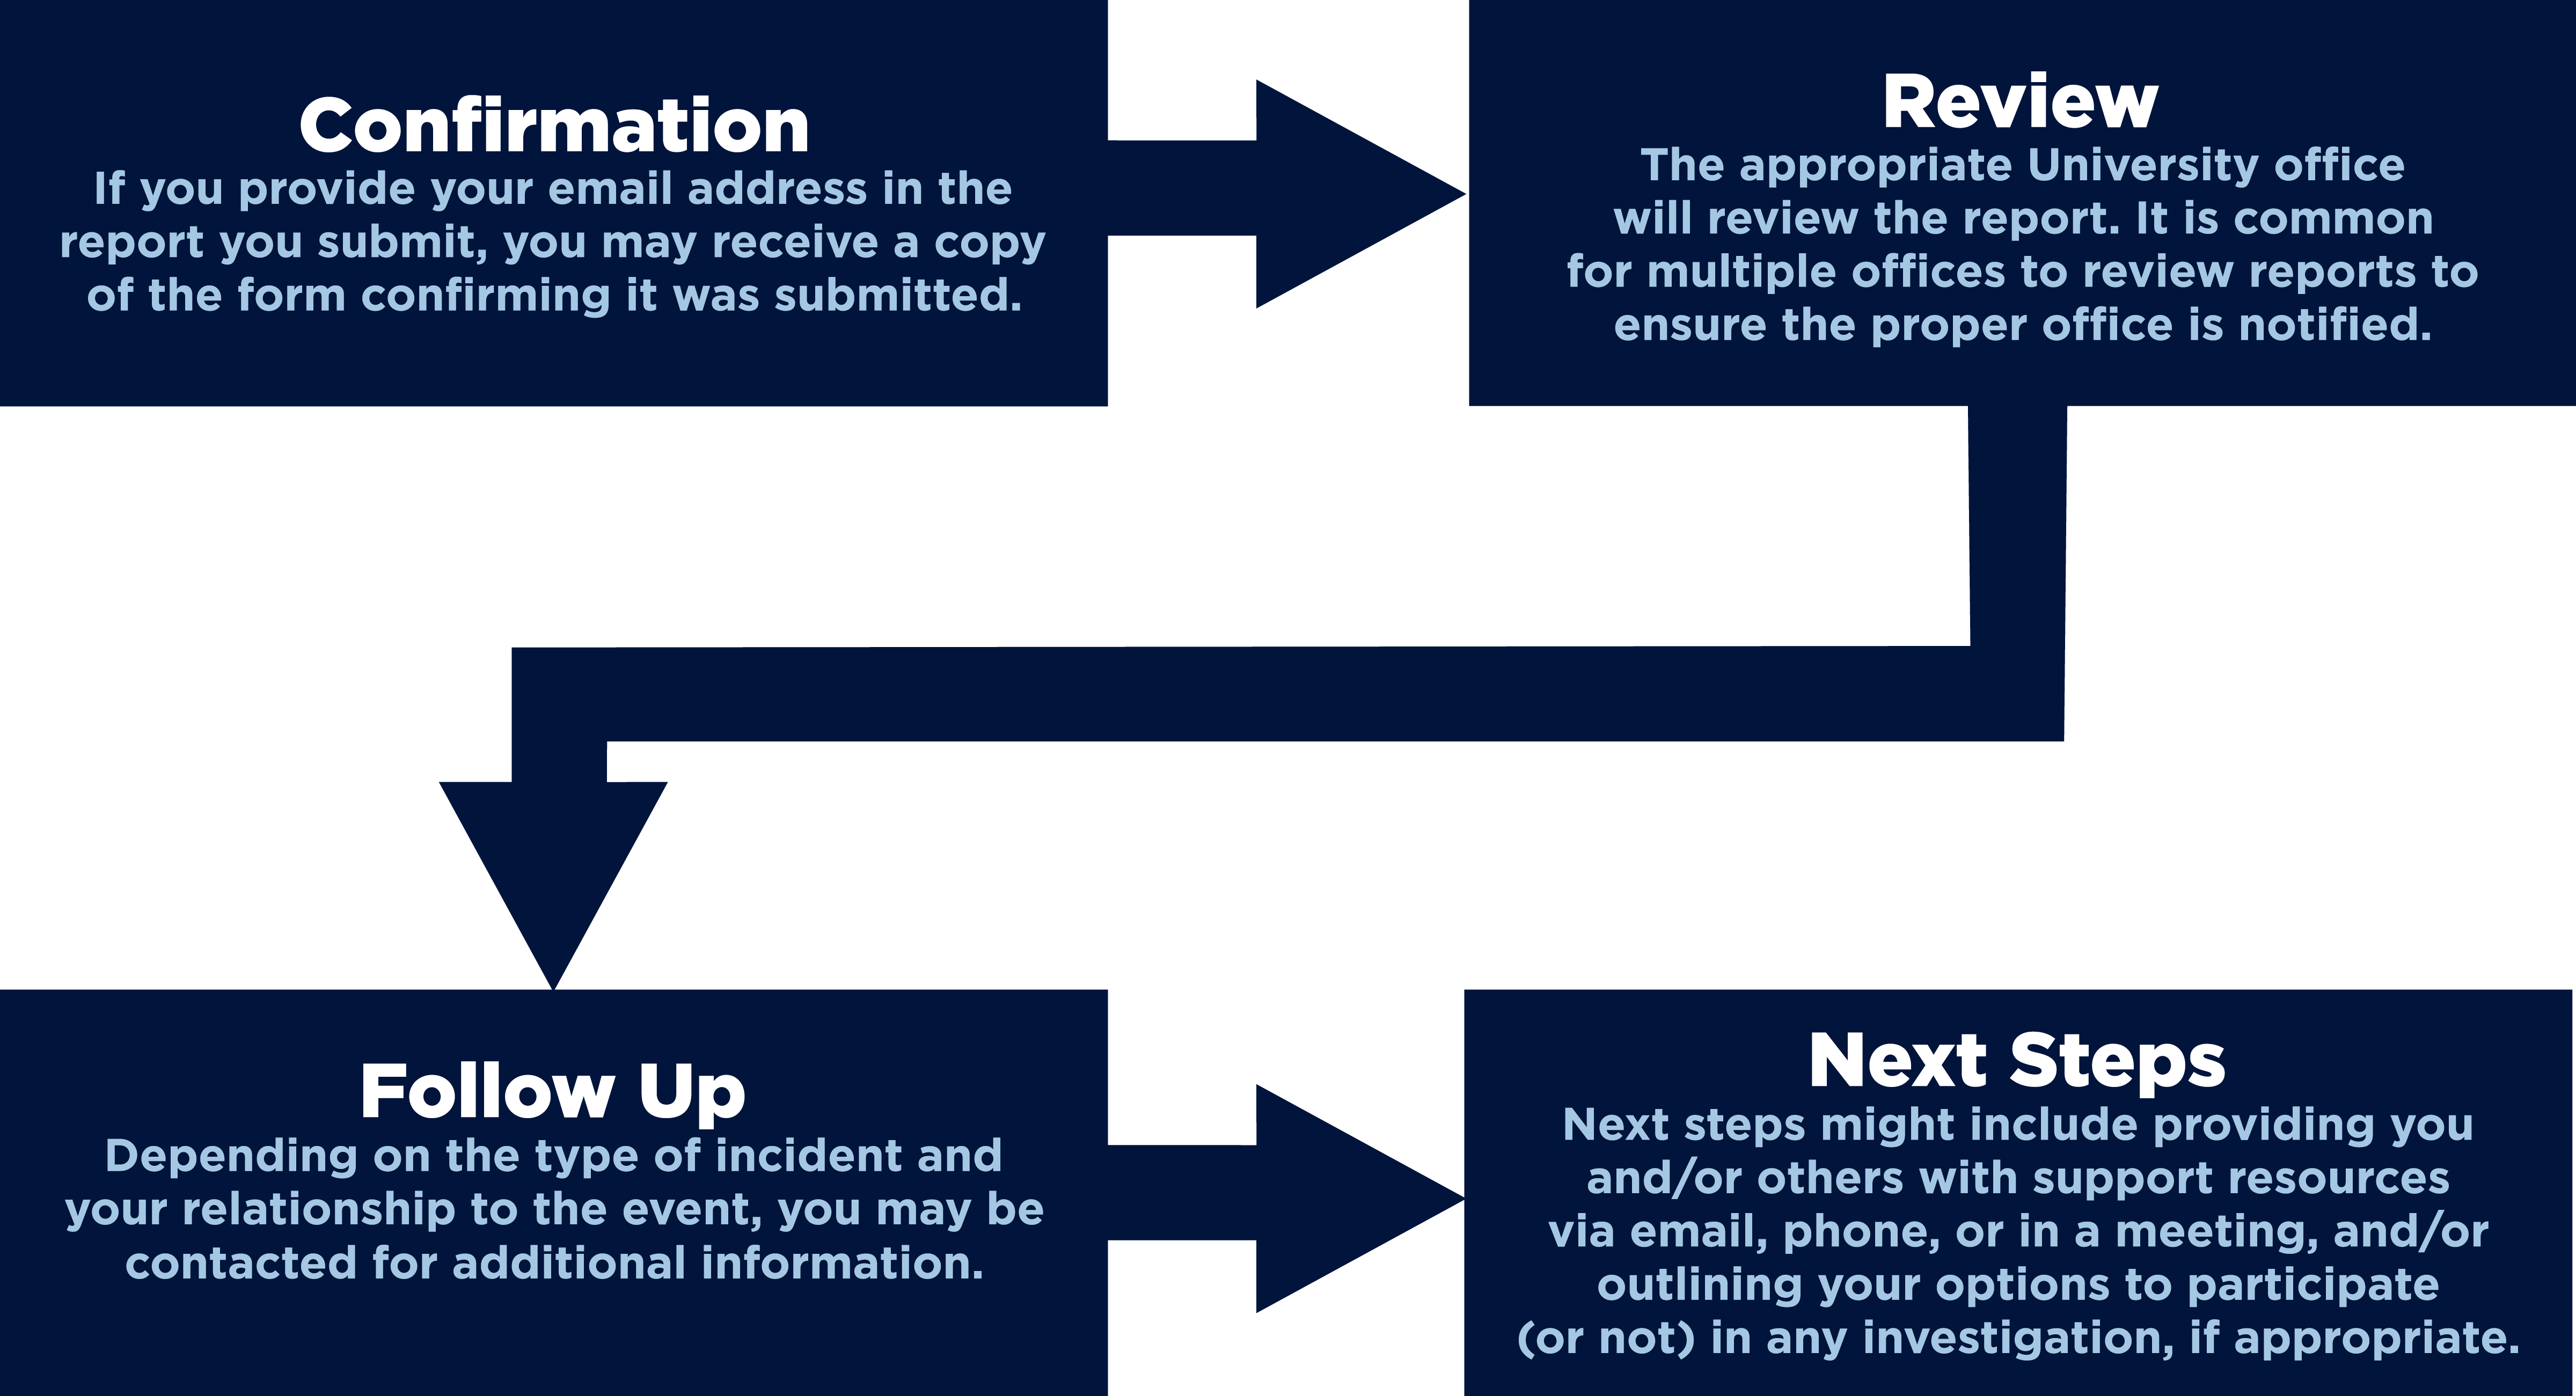 InForm Diagram about Confirmation, Review, Follow Up, and Next Steps